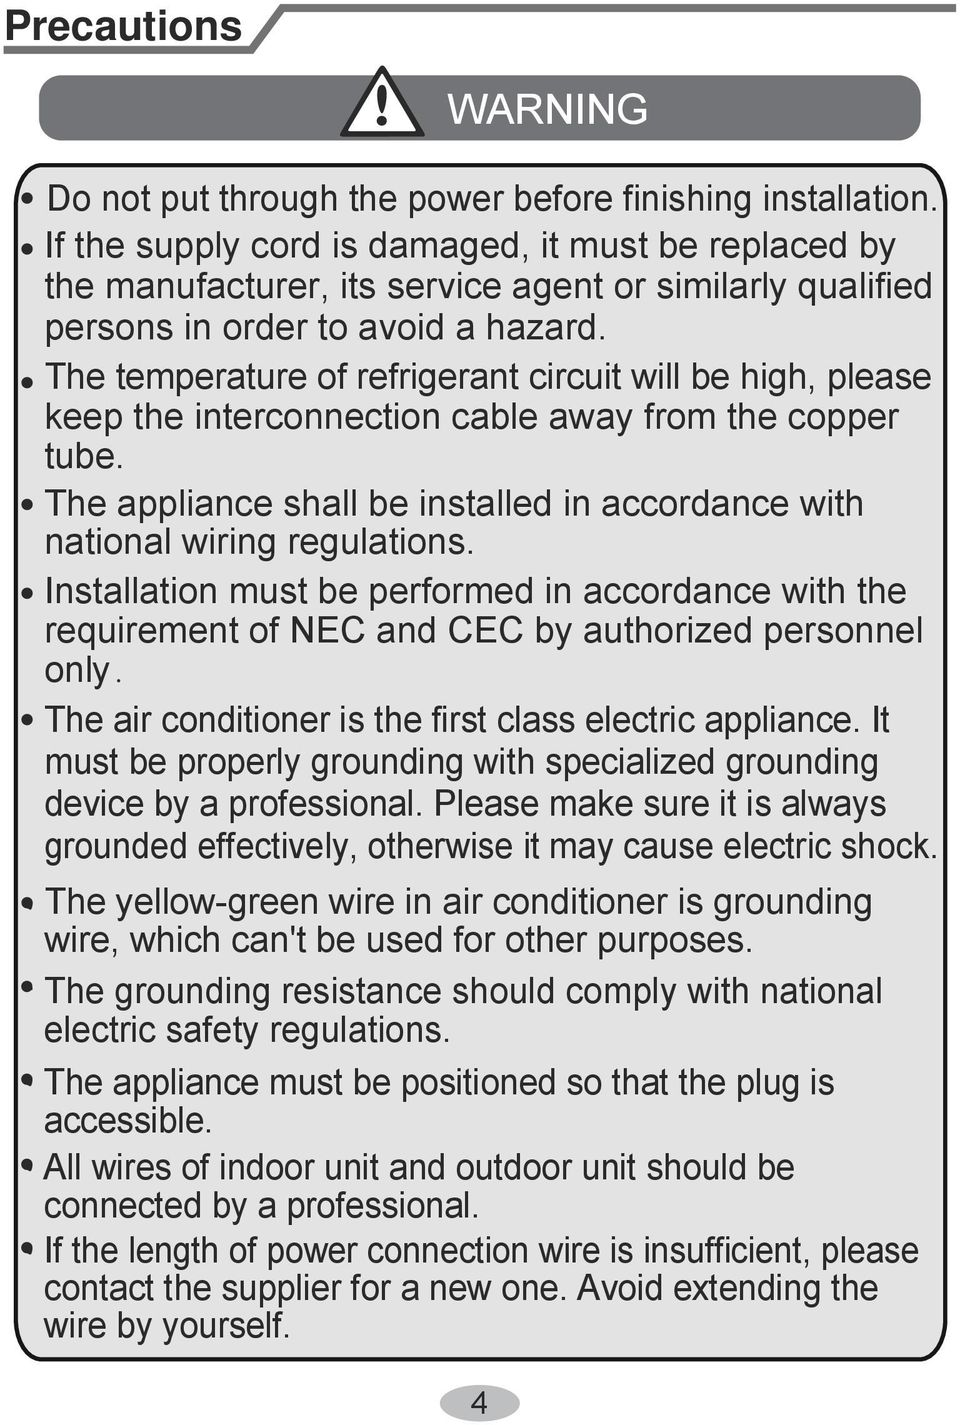 The temperature of refrigerant circuit will be high, please keep the interconnection cable away from the copper tube. The appliance shall be installed in accordance with national wiring regulations.